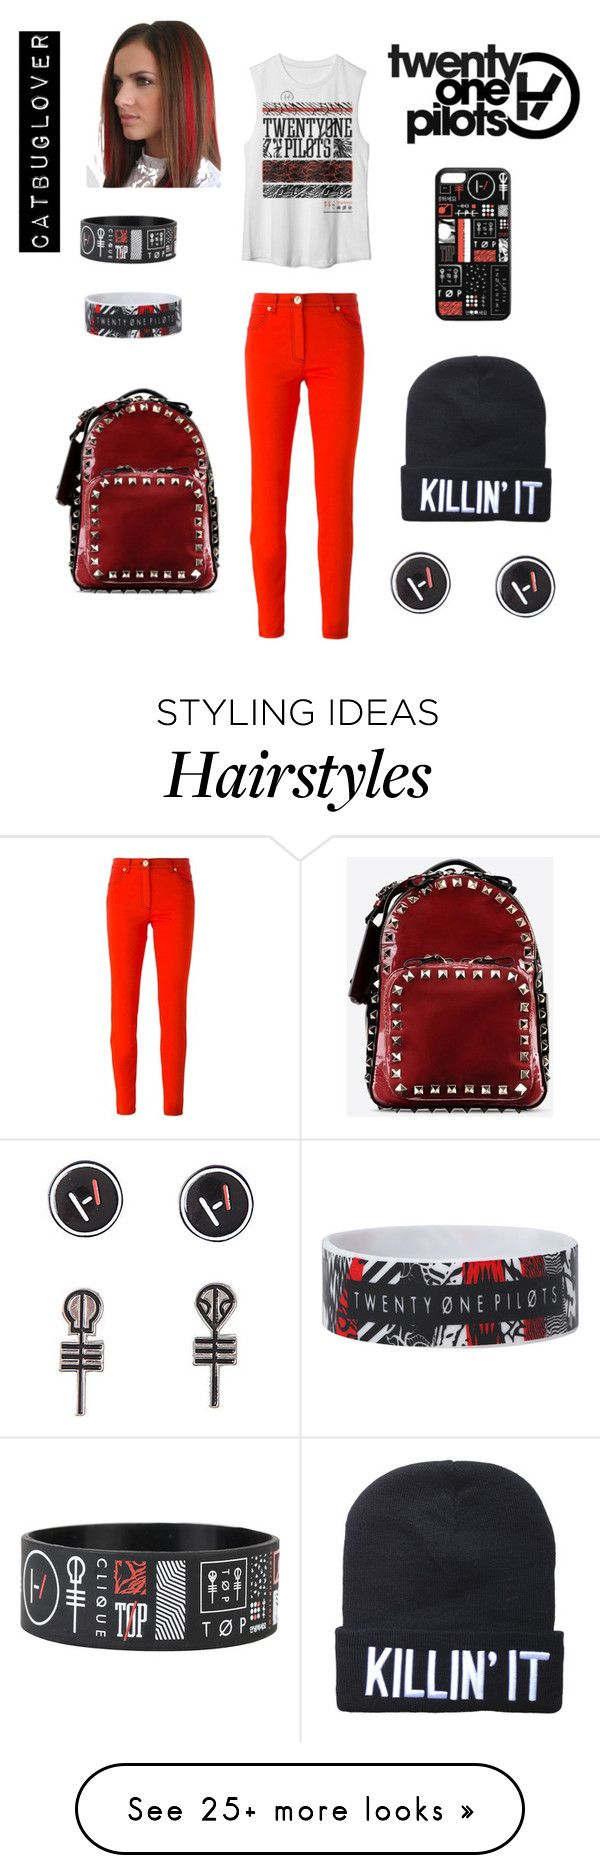 """T.ø.p concert"" by catbuglover on Polyvore featuring Versace and Valentino"